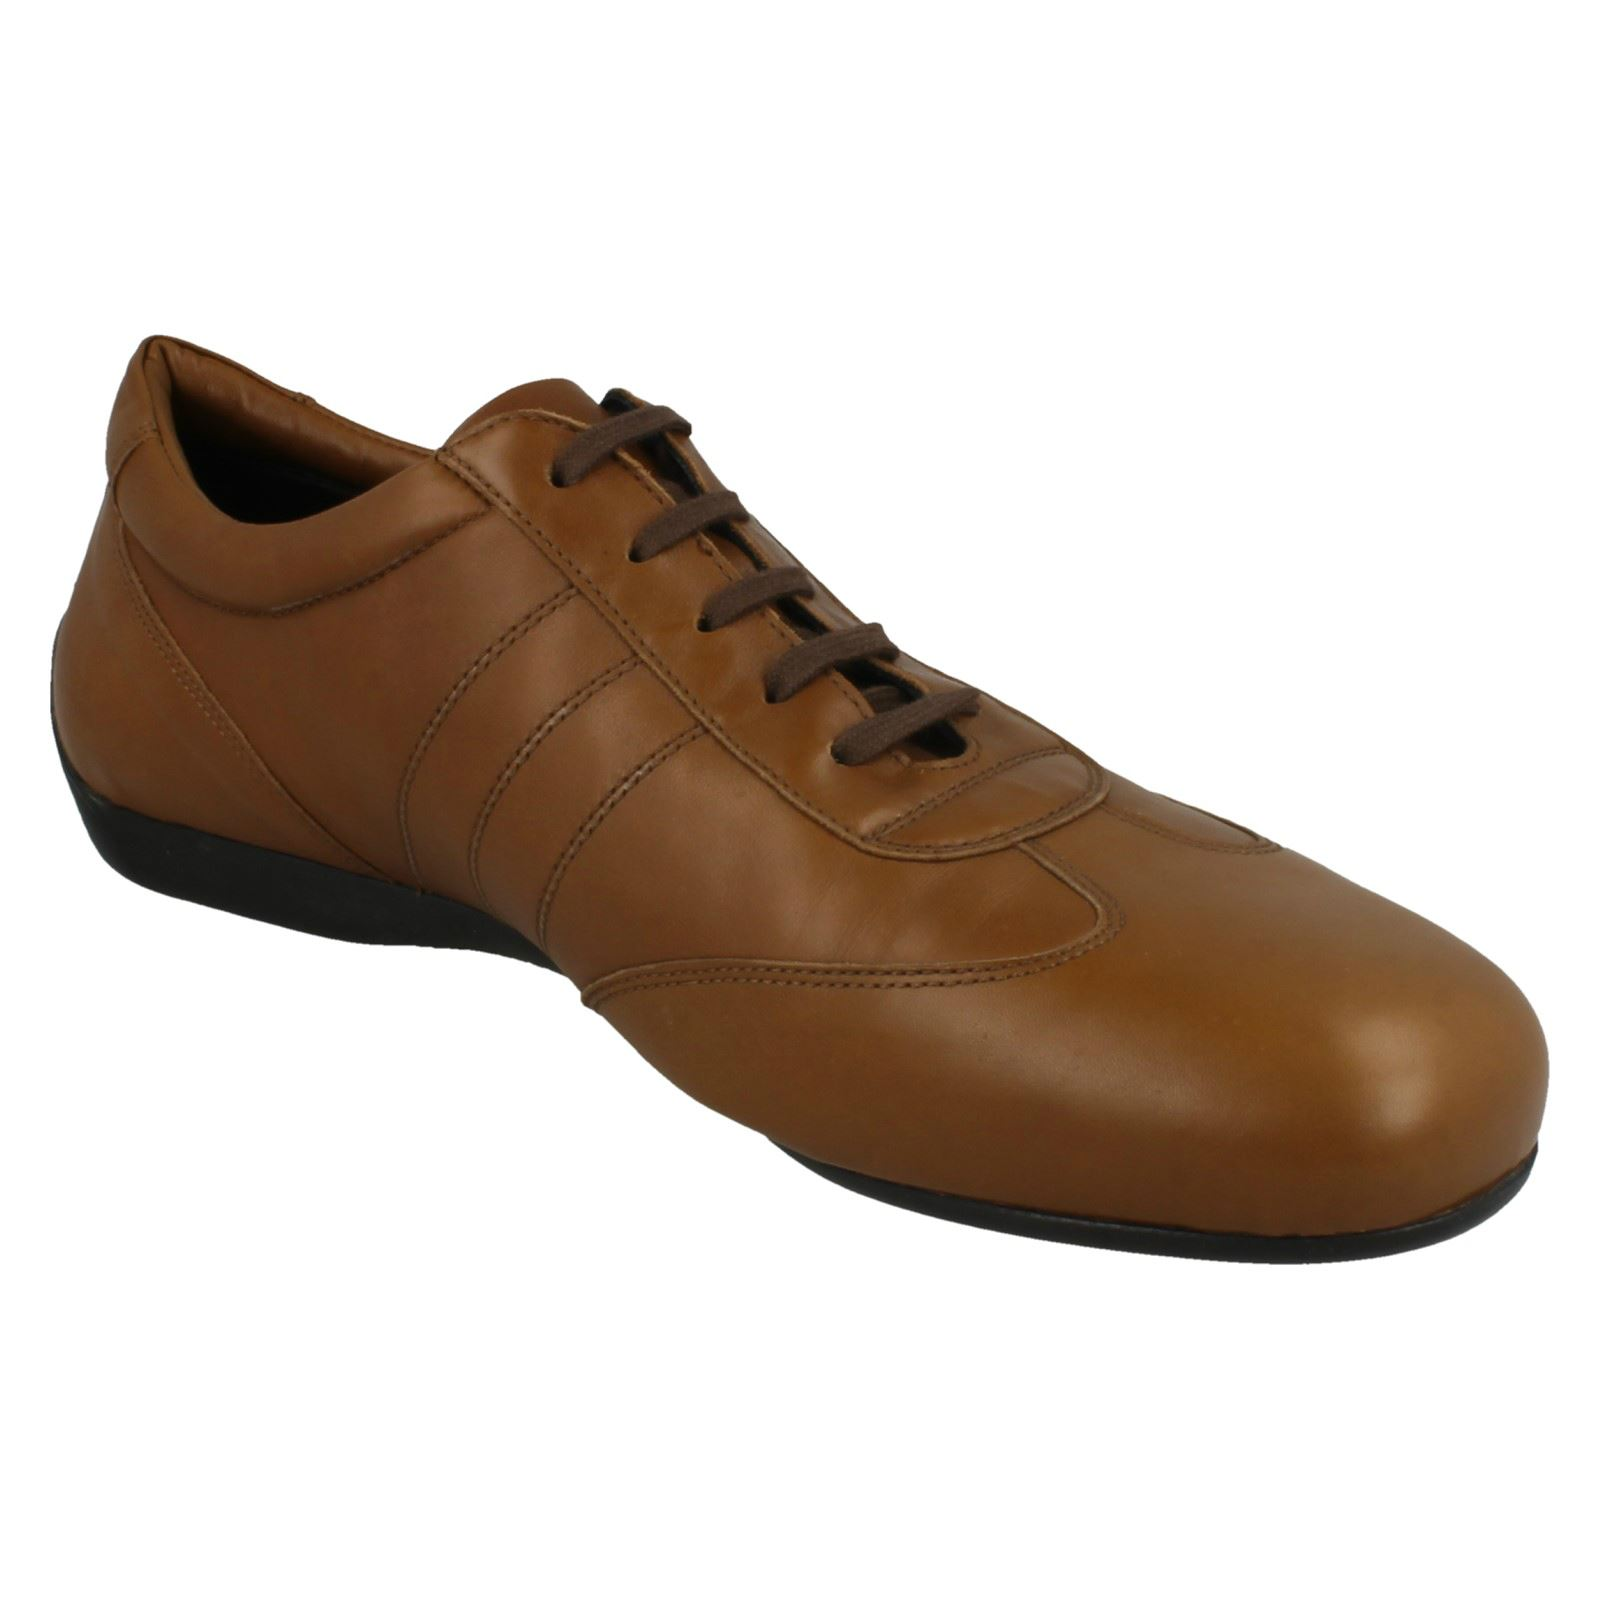 Mens Joseph Cheaney Casual Schuhes Lace Up Schuhes Casual Rossi bbd566